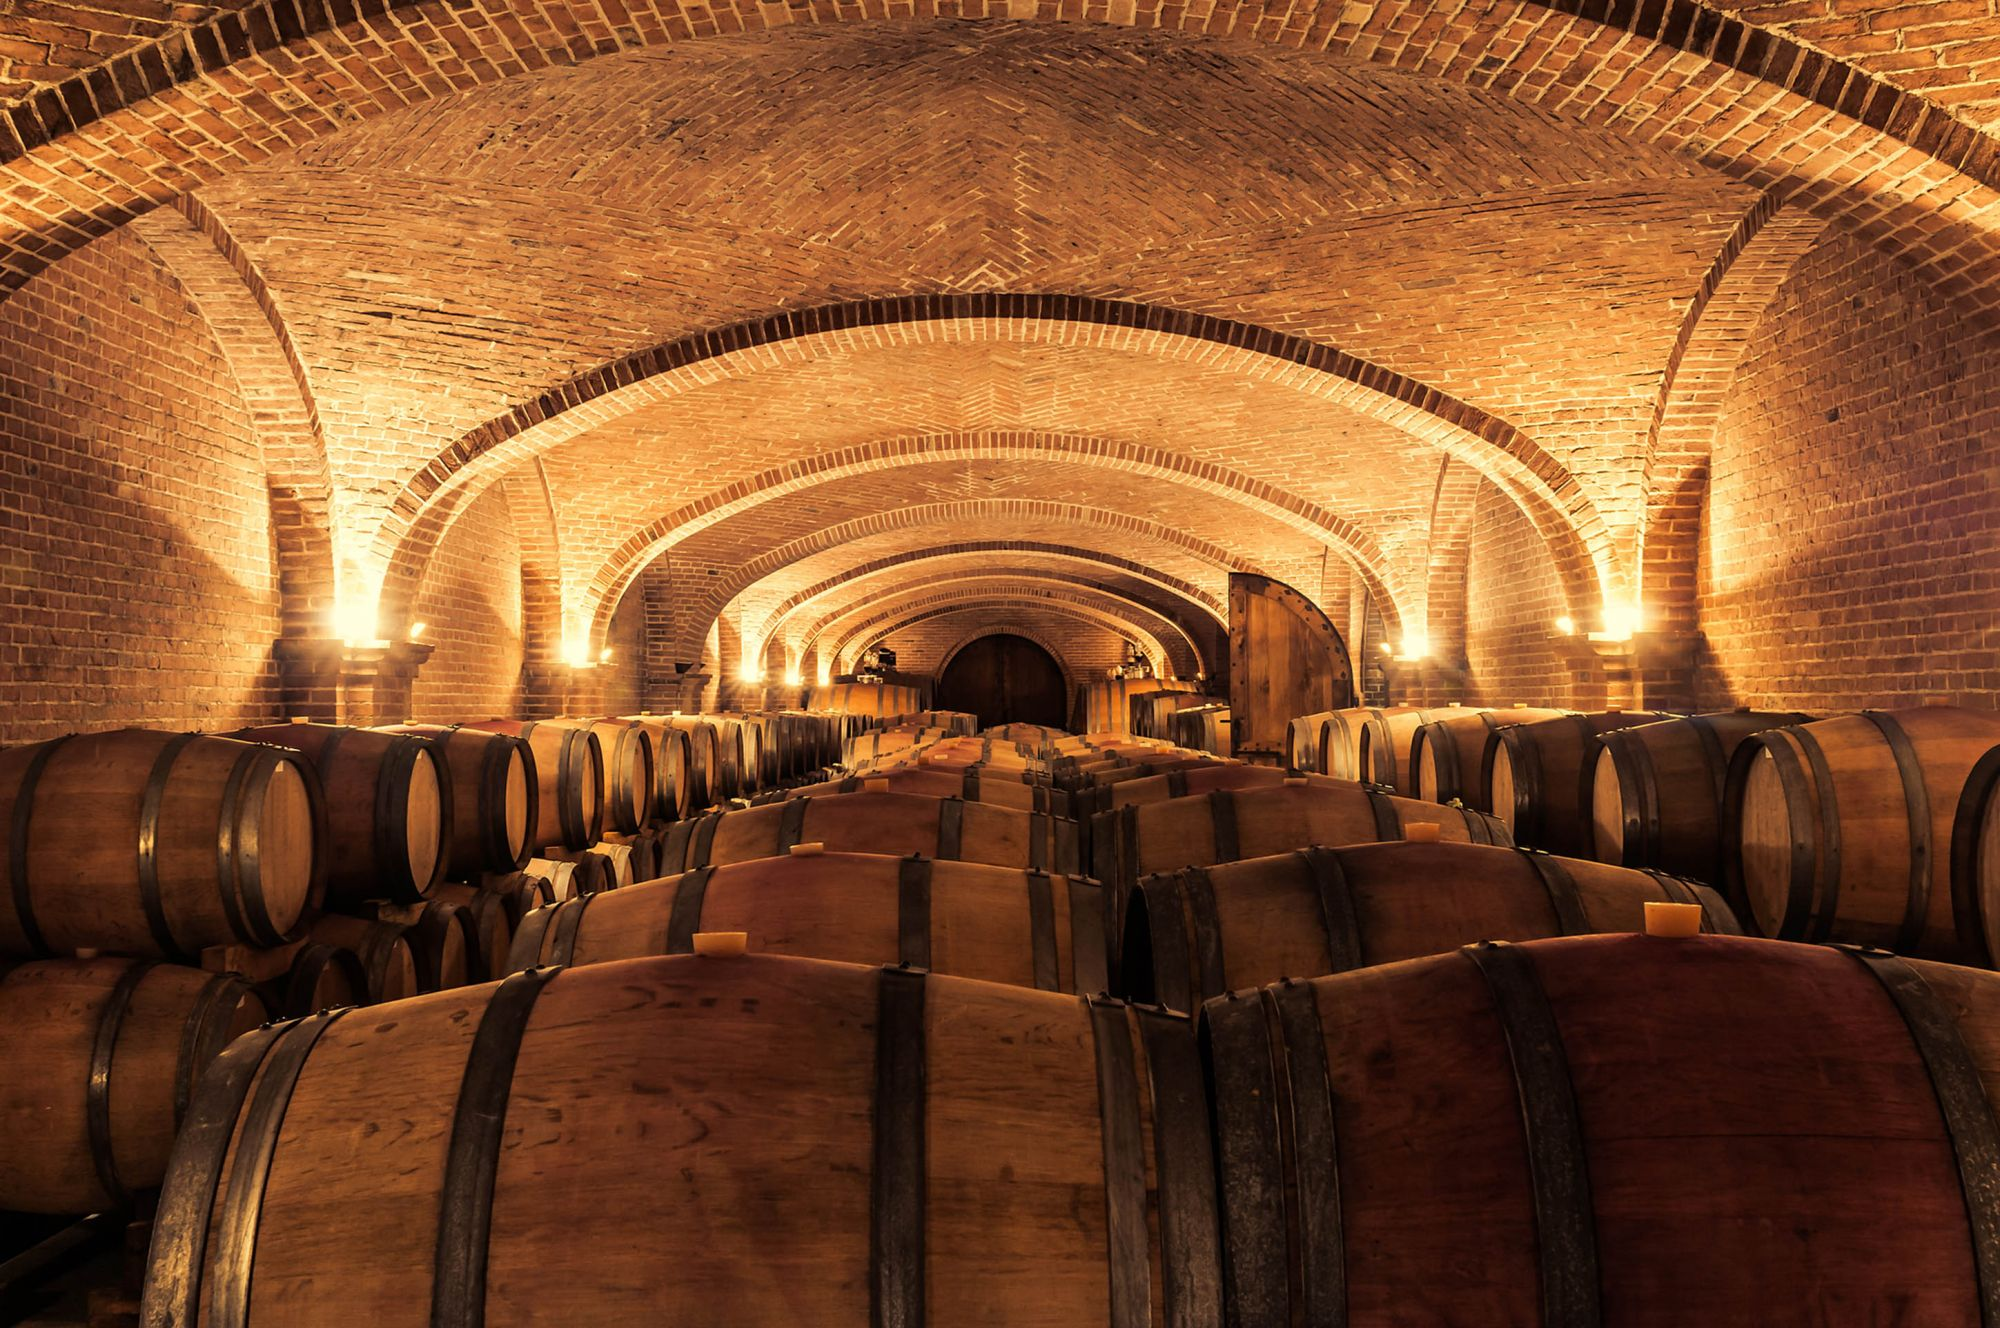 LVMH wine and spirit estates around the world to open doors to public